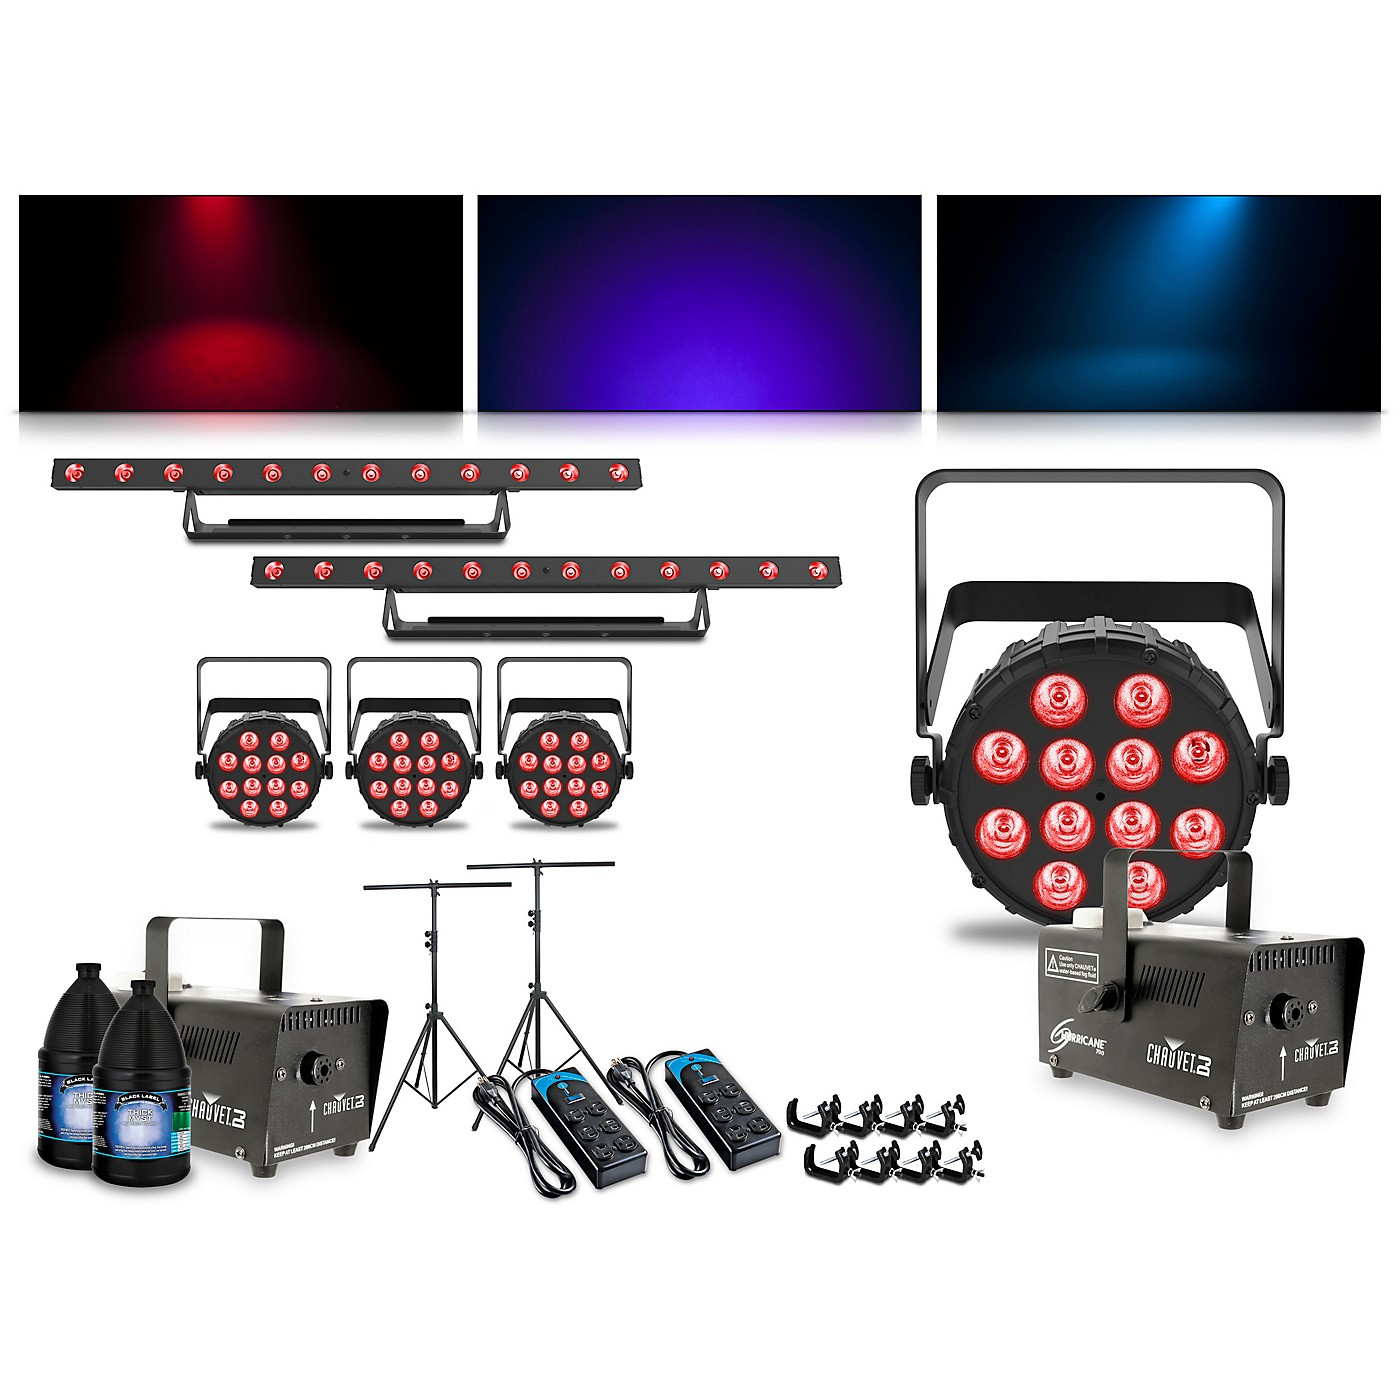 CHAUVET DJ Complete Lighting Package with Four SlimPAR Q12 BT, Two ColorBAND T3 BT and Two Hurricane 700 Fog Machines thumbnail